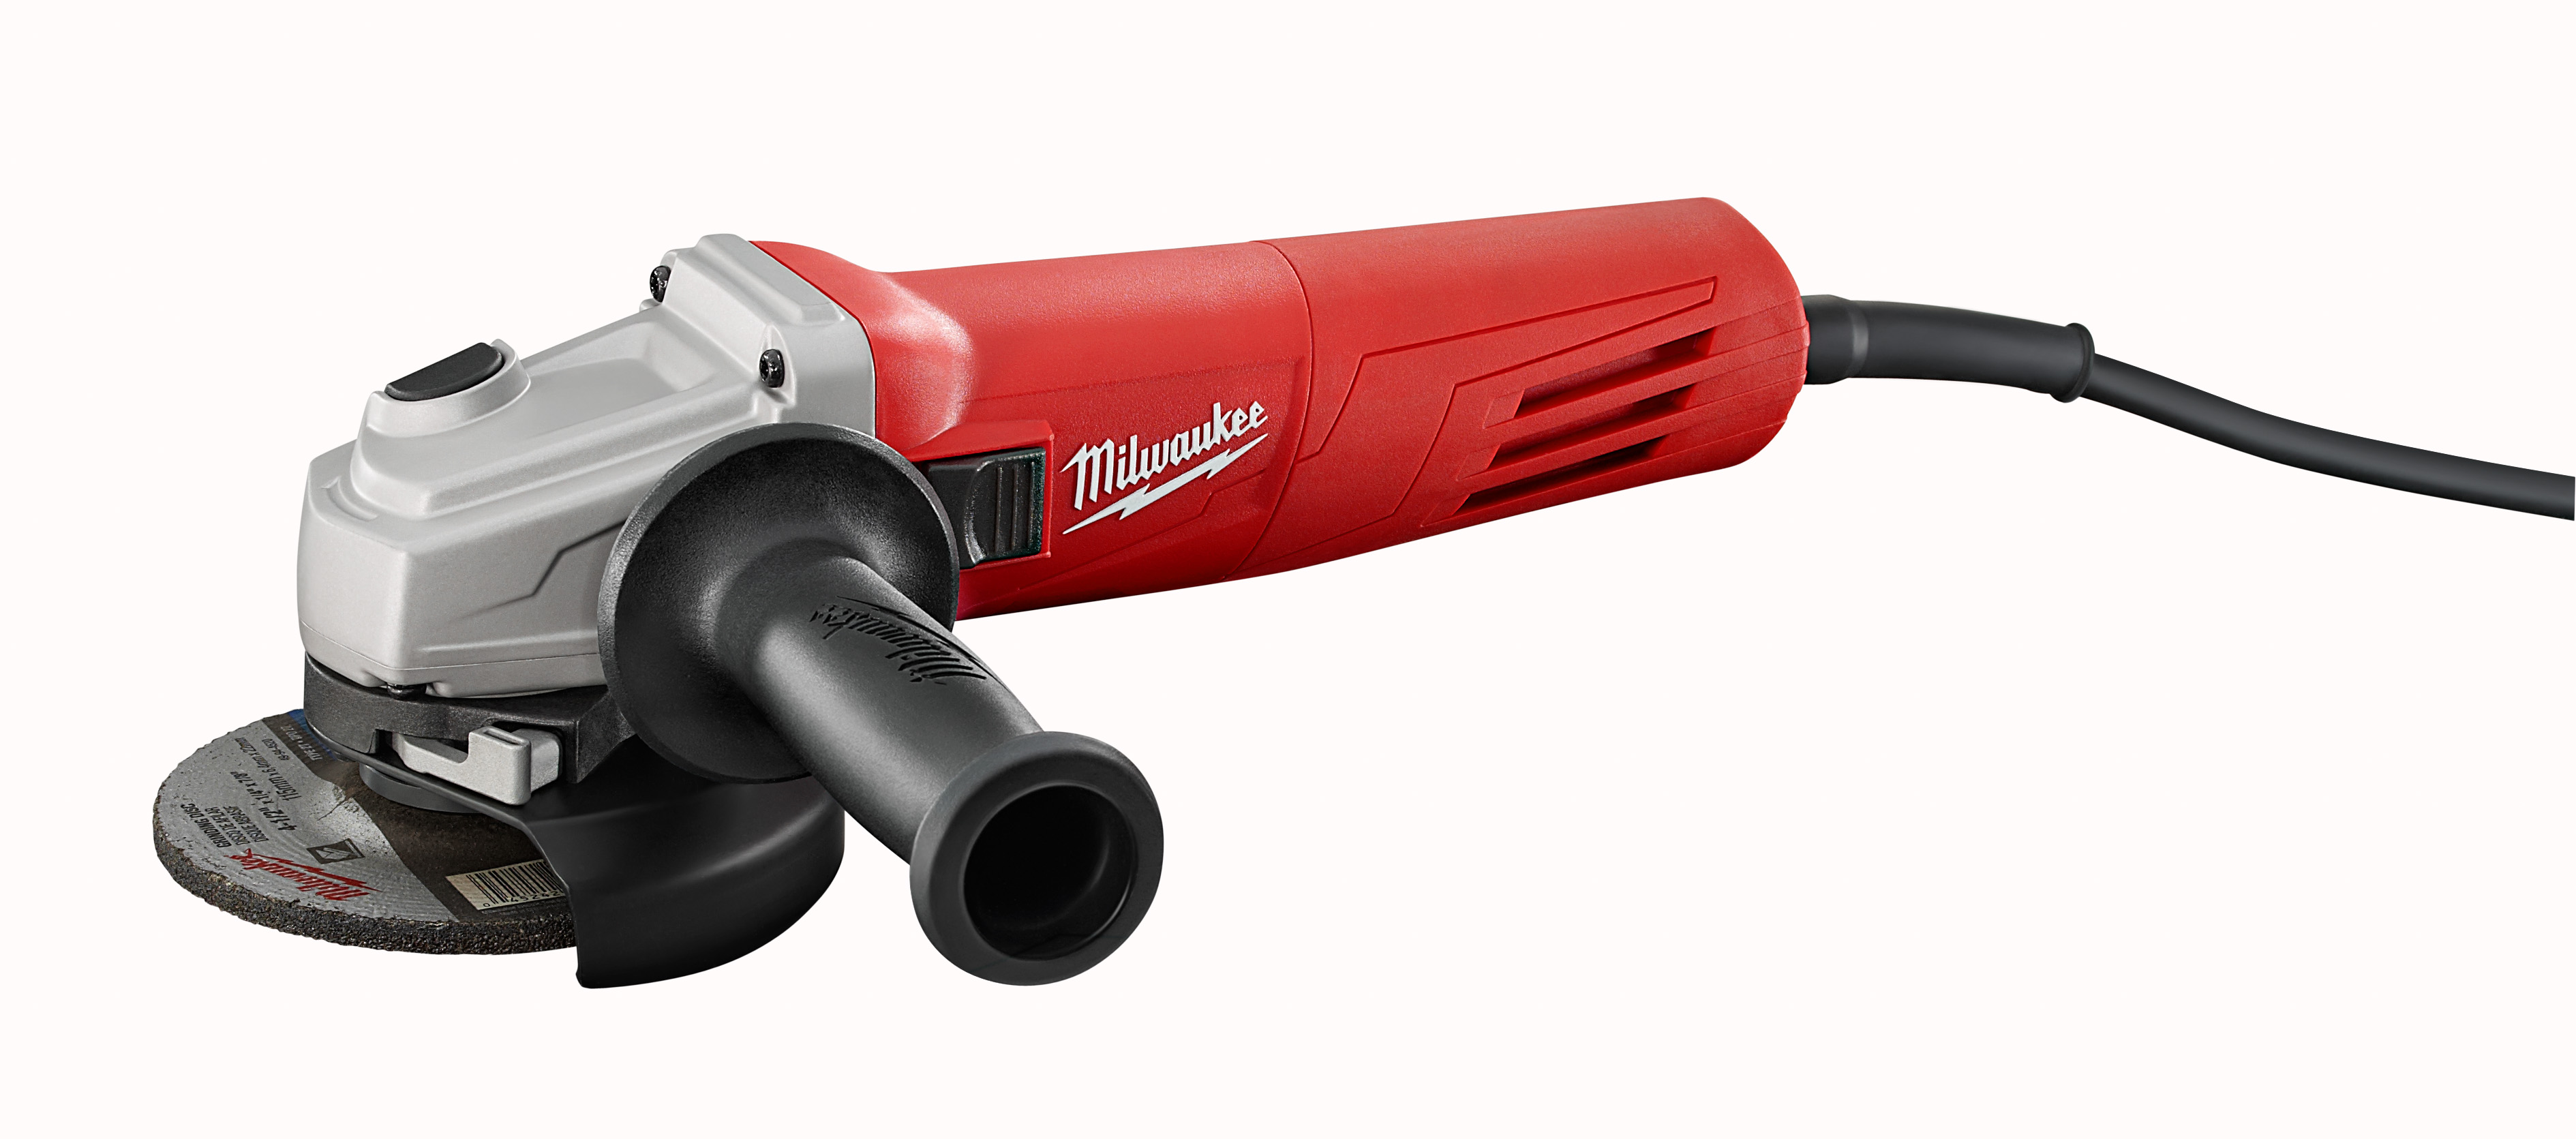 "Milwaukee 6146-33 11 Amp 4-1/2"" Small Angle Grinder Slide, Lock-On"